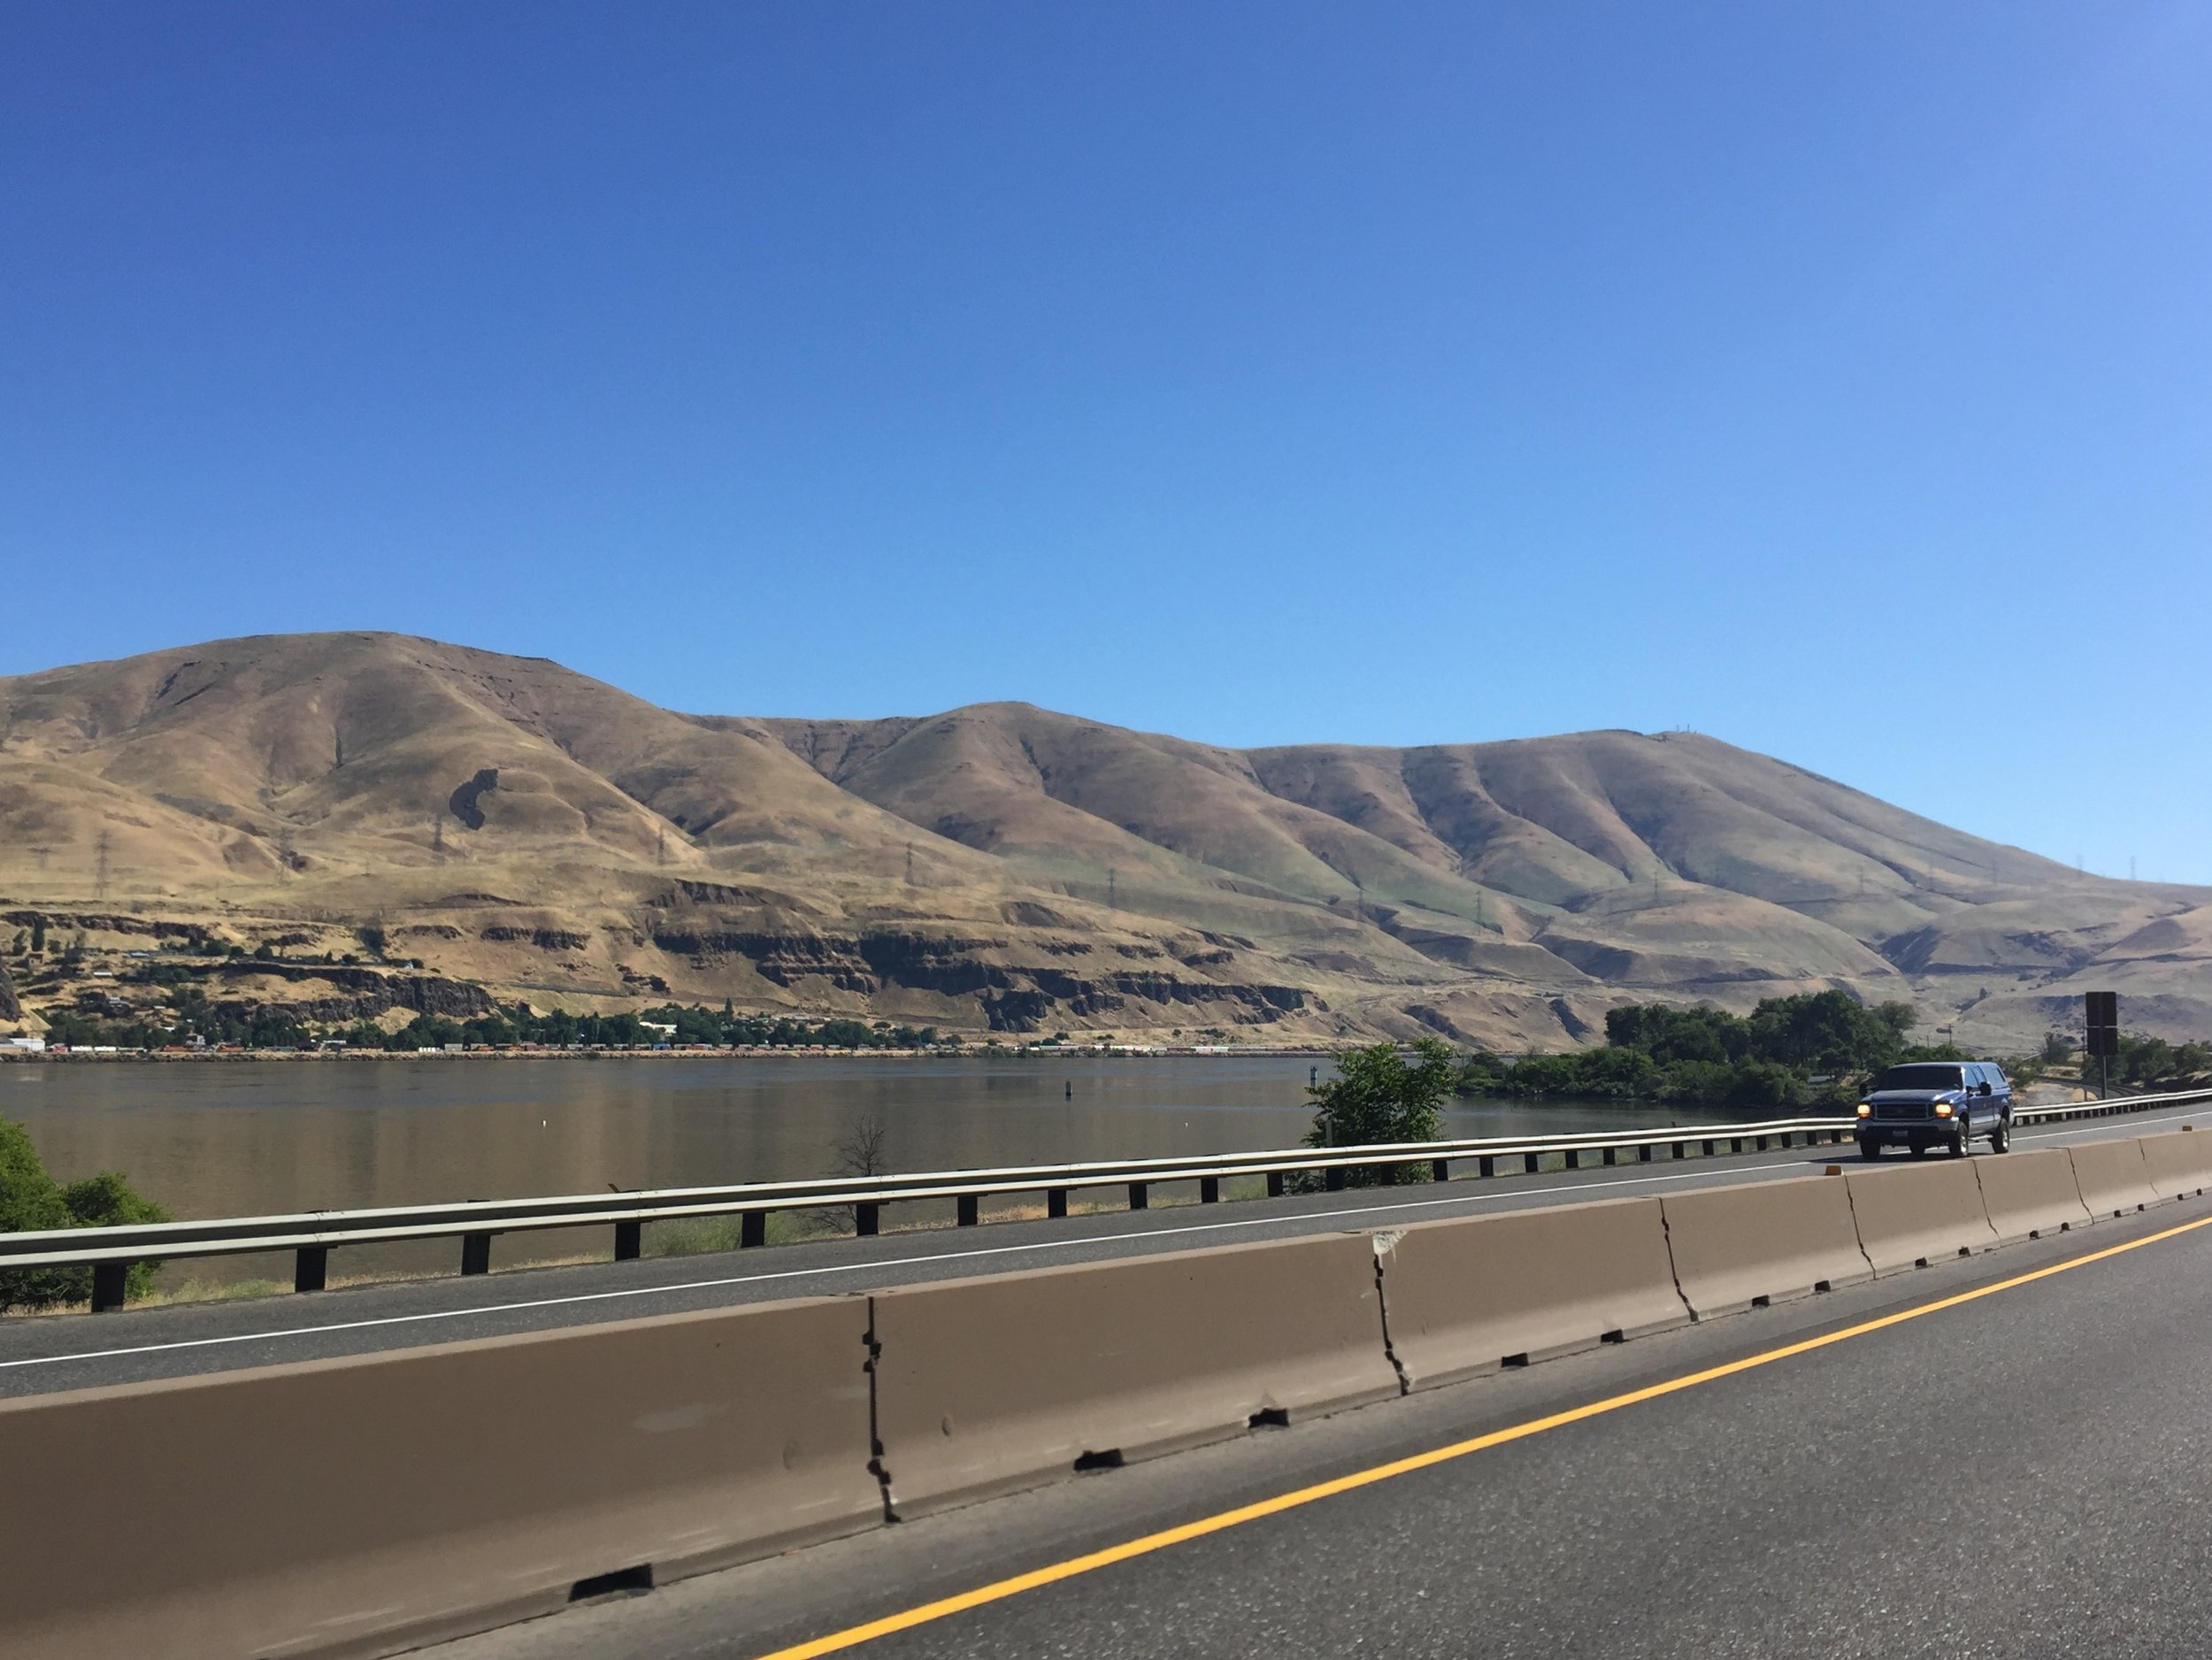 Heading east along I-84 at the former site of Celilo Falls. It is an unanswerable question now. The wildness of this river sits submerged beneath a series of lakes that were once the Columbia River. Here in the Northwest, however, we are not confronted with the ugly specter of coal fired energy generation except by the trains that haul the material to the coast from the Wyoming coal fields. The dams on the Columbia now serve as a valuable waterway upon which goods and raw materials move back and forth. We flip on the lights any time we need it. It is so ubiquitous, it is easy to forget about where it comes from and who the winners and losers are in that equation. Celilo Falls probably are not coming back in the foreseeable future. But I feel it is important to reflect that these actions amounted to a systematic ethnic cleansing brought about by a rapidly expanding nation with a dark history of similar actions towards indigenous peoples.